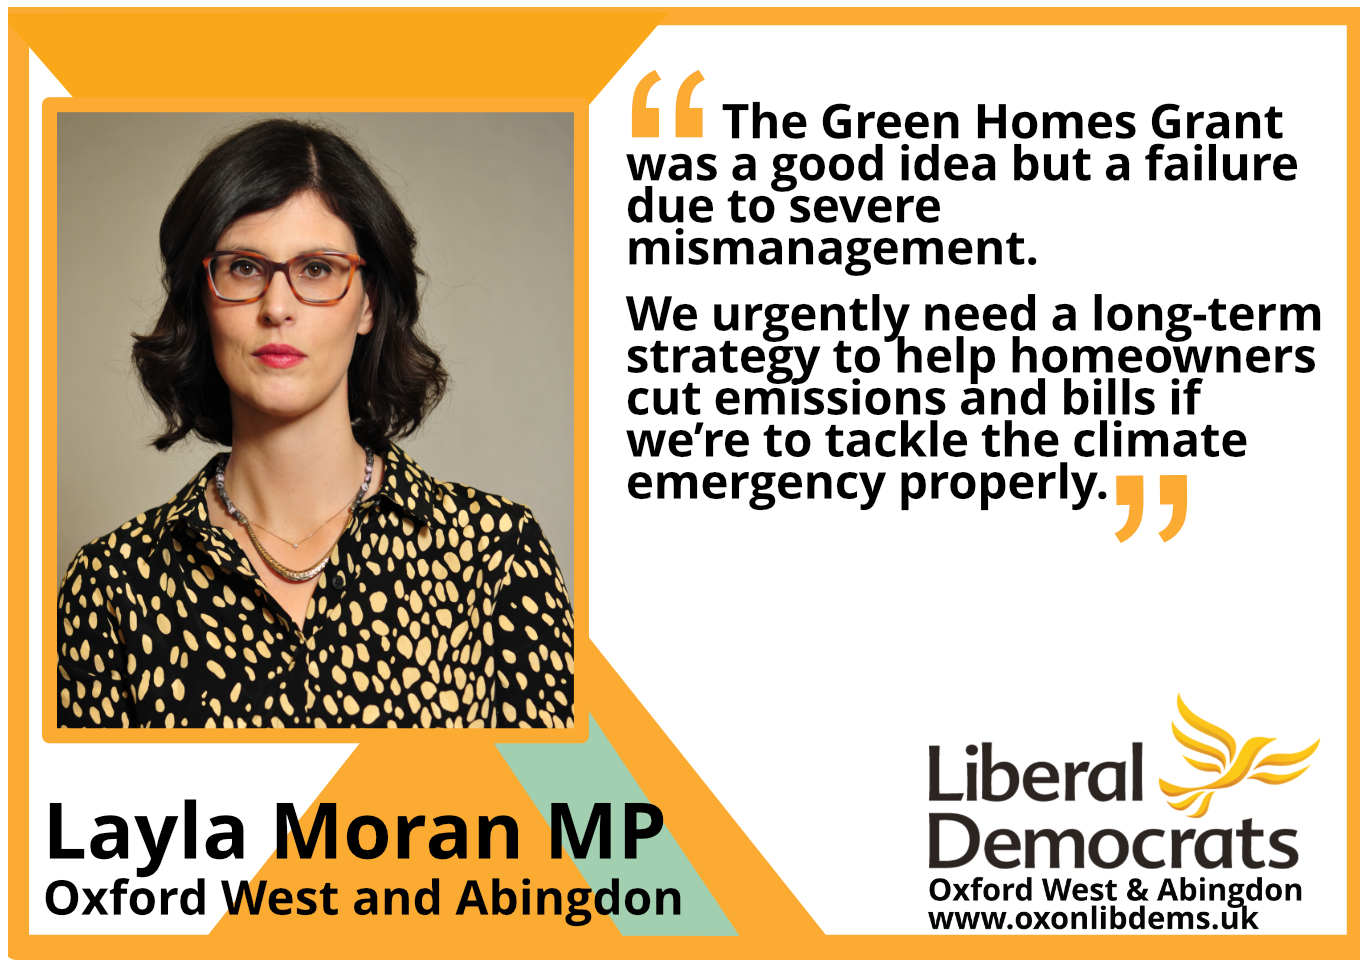 key_The Green Homes Grant was a good idea but a failure due to severe mismanagement. We urgently need a long-term strategy to help homeowners cut emissions and bills if we're to tackle the climate emergency properly